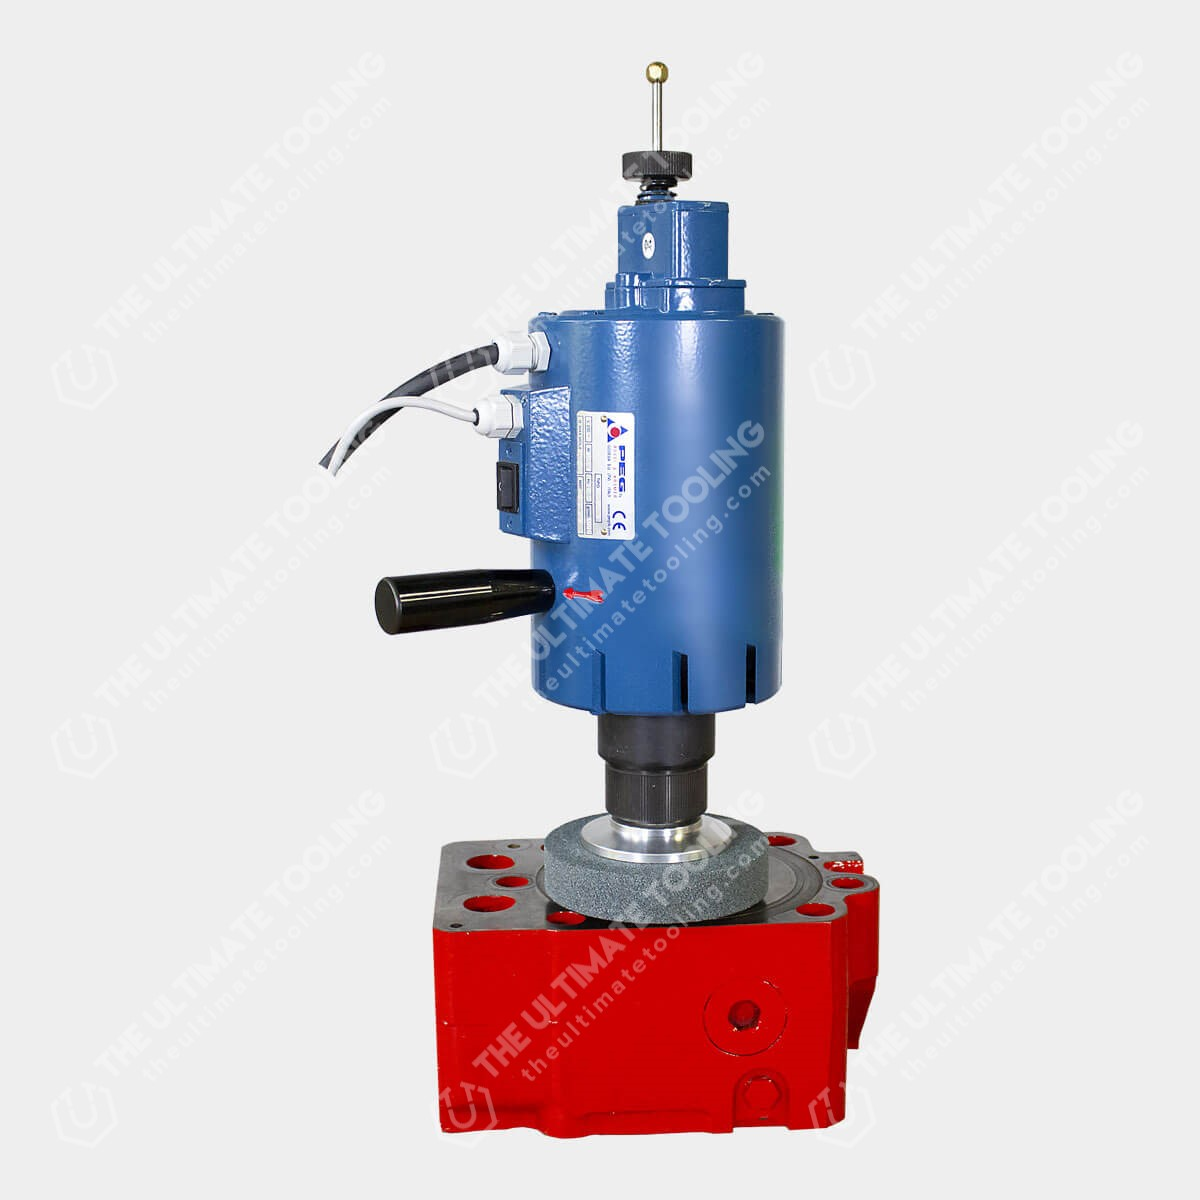 PEG 125 valve seats grinding machine